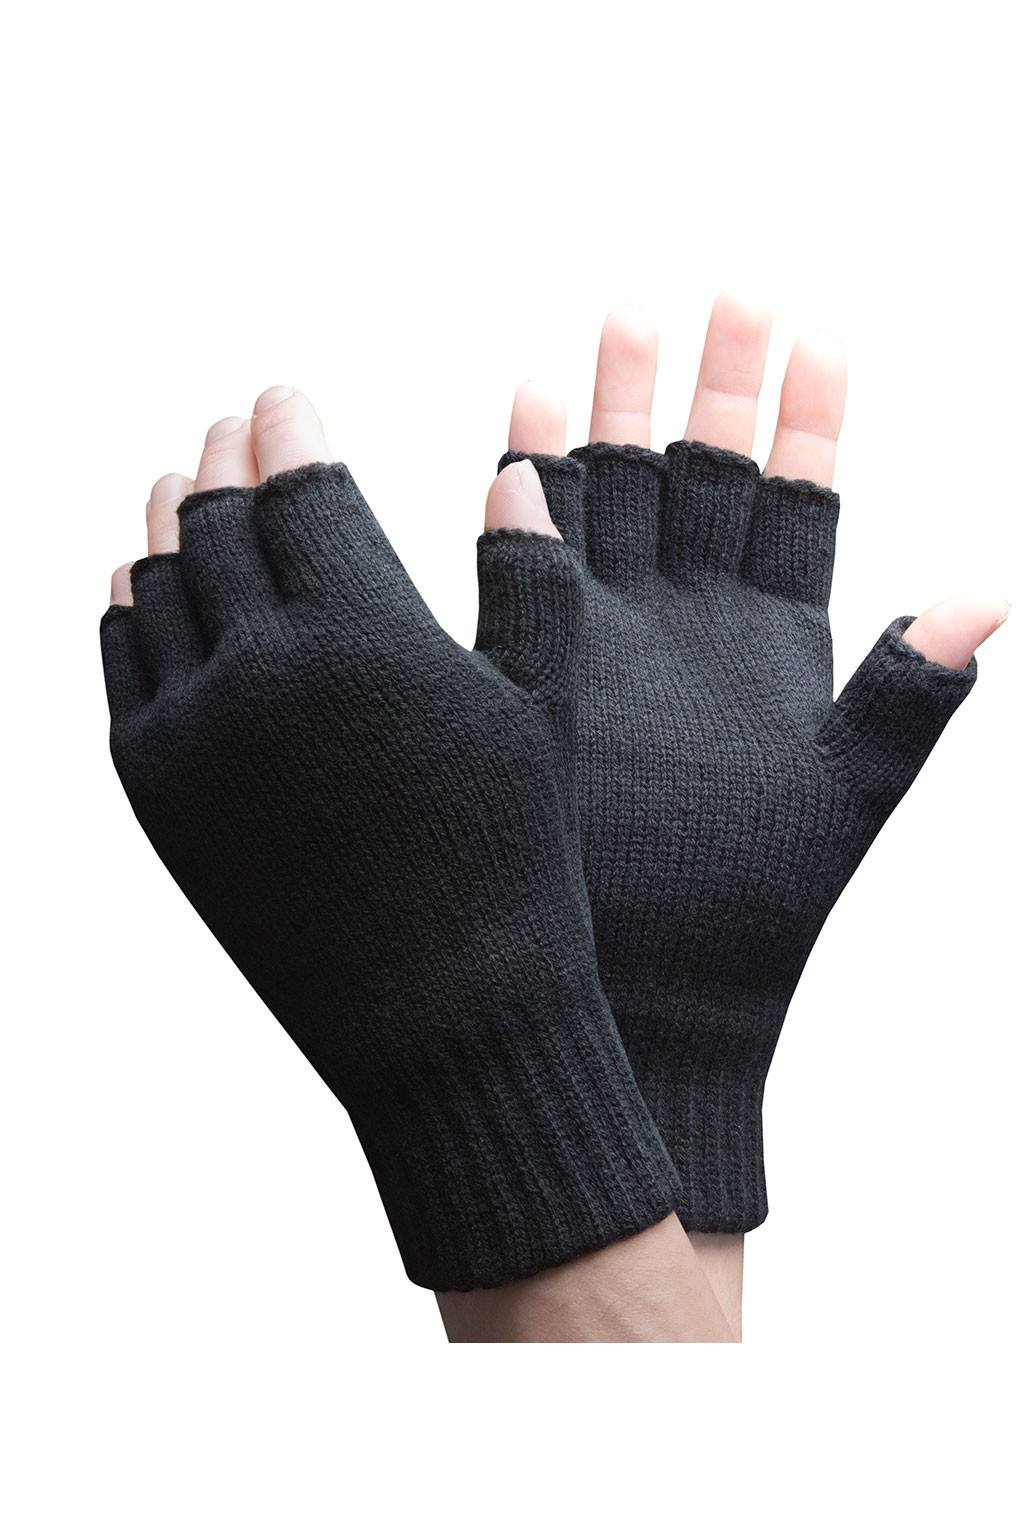 Find great deals on Mens Gloves & Mittens at Kohl's today!Types: Socks, Hats, Handbags, Wallets, Sunglasses, Belts.